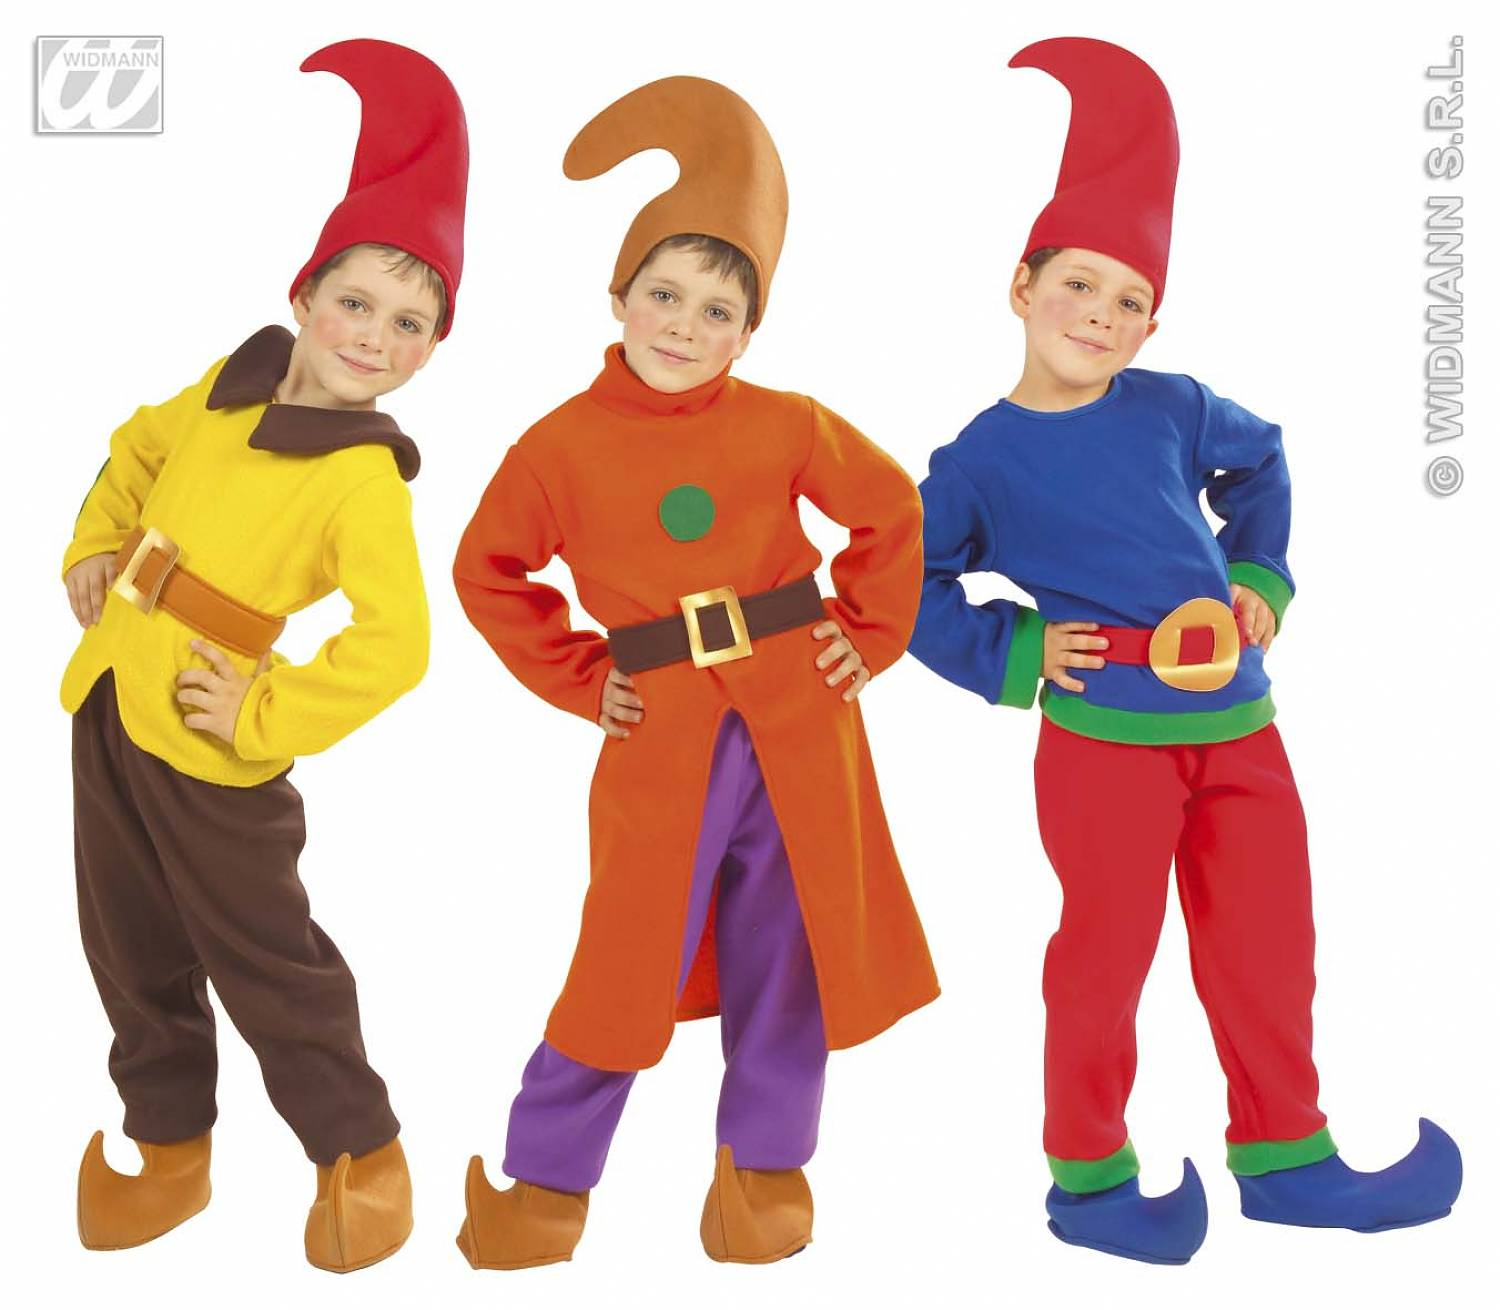 Carnival-costumes Children Gnome  sc 1 st  in the most foolish online fancy dress and accessory store & Carnival-costumes: Children: Gnome - Fancy dress